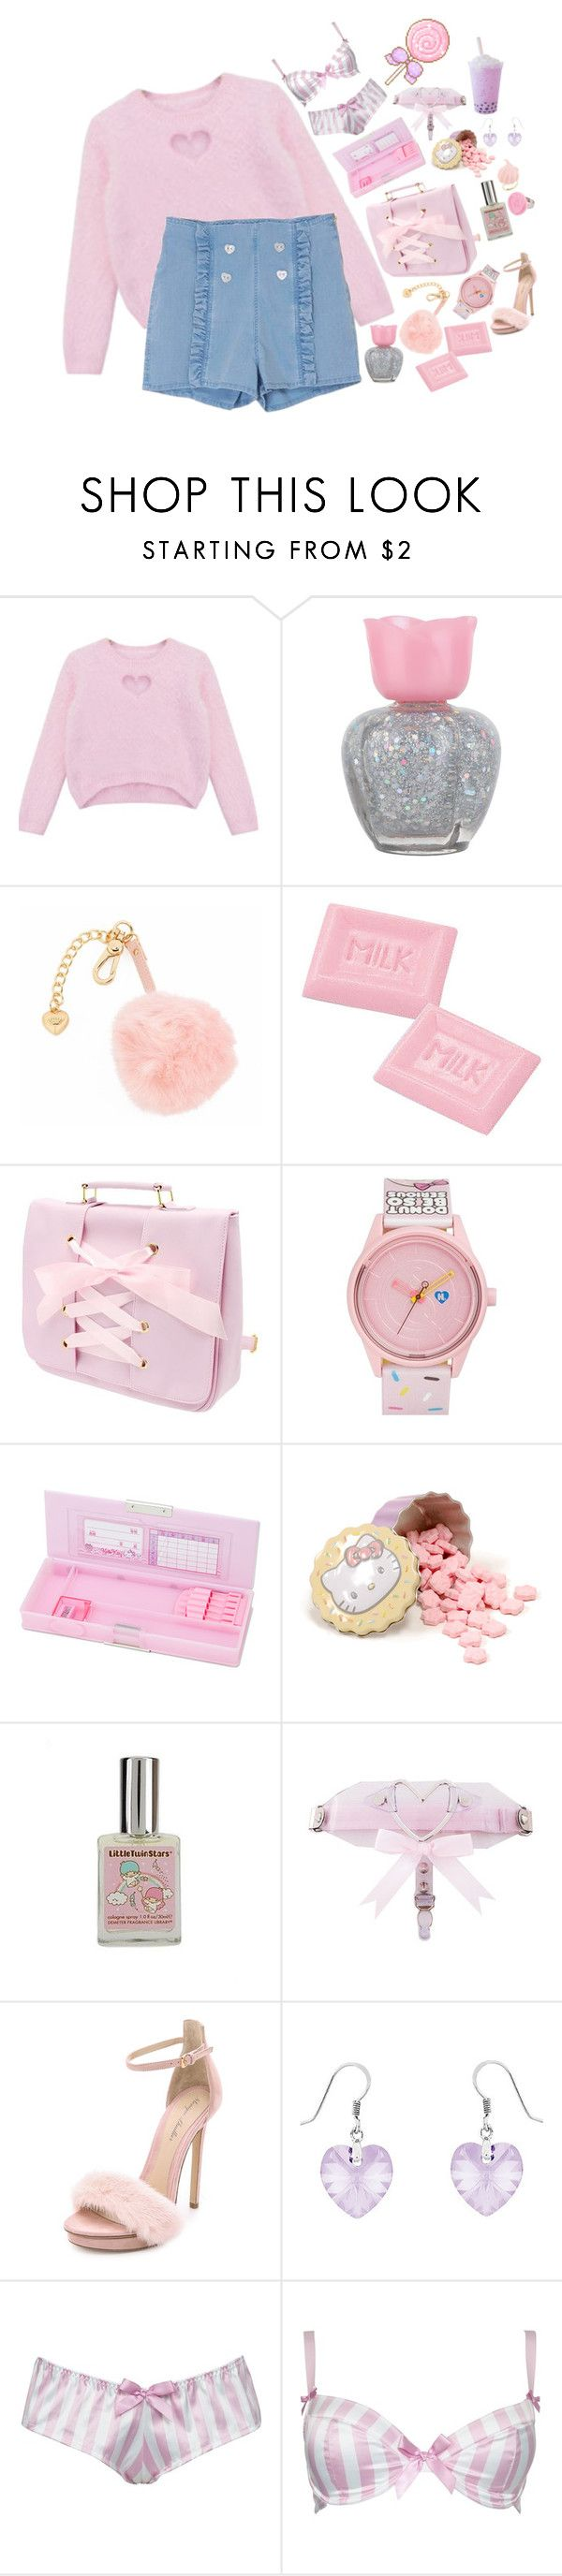 """-ITS MY BIRTHDAY!!-"" by akiko-pastel-princess ❤ liked on Polyvore featuring Chicnova Fashion, Forever 21, Juicy Couture, Harajuku Lovers, Hello Kitty, Monique Lhuillier, Divine Silver and Alexis Smith"